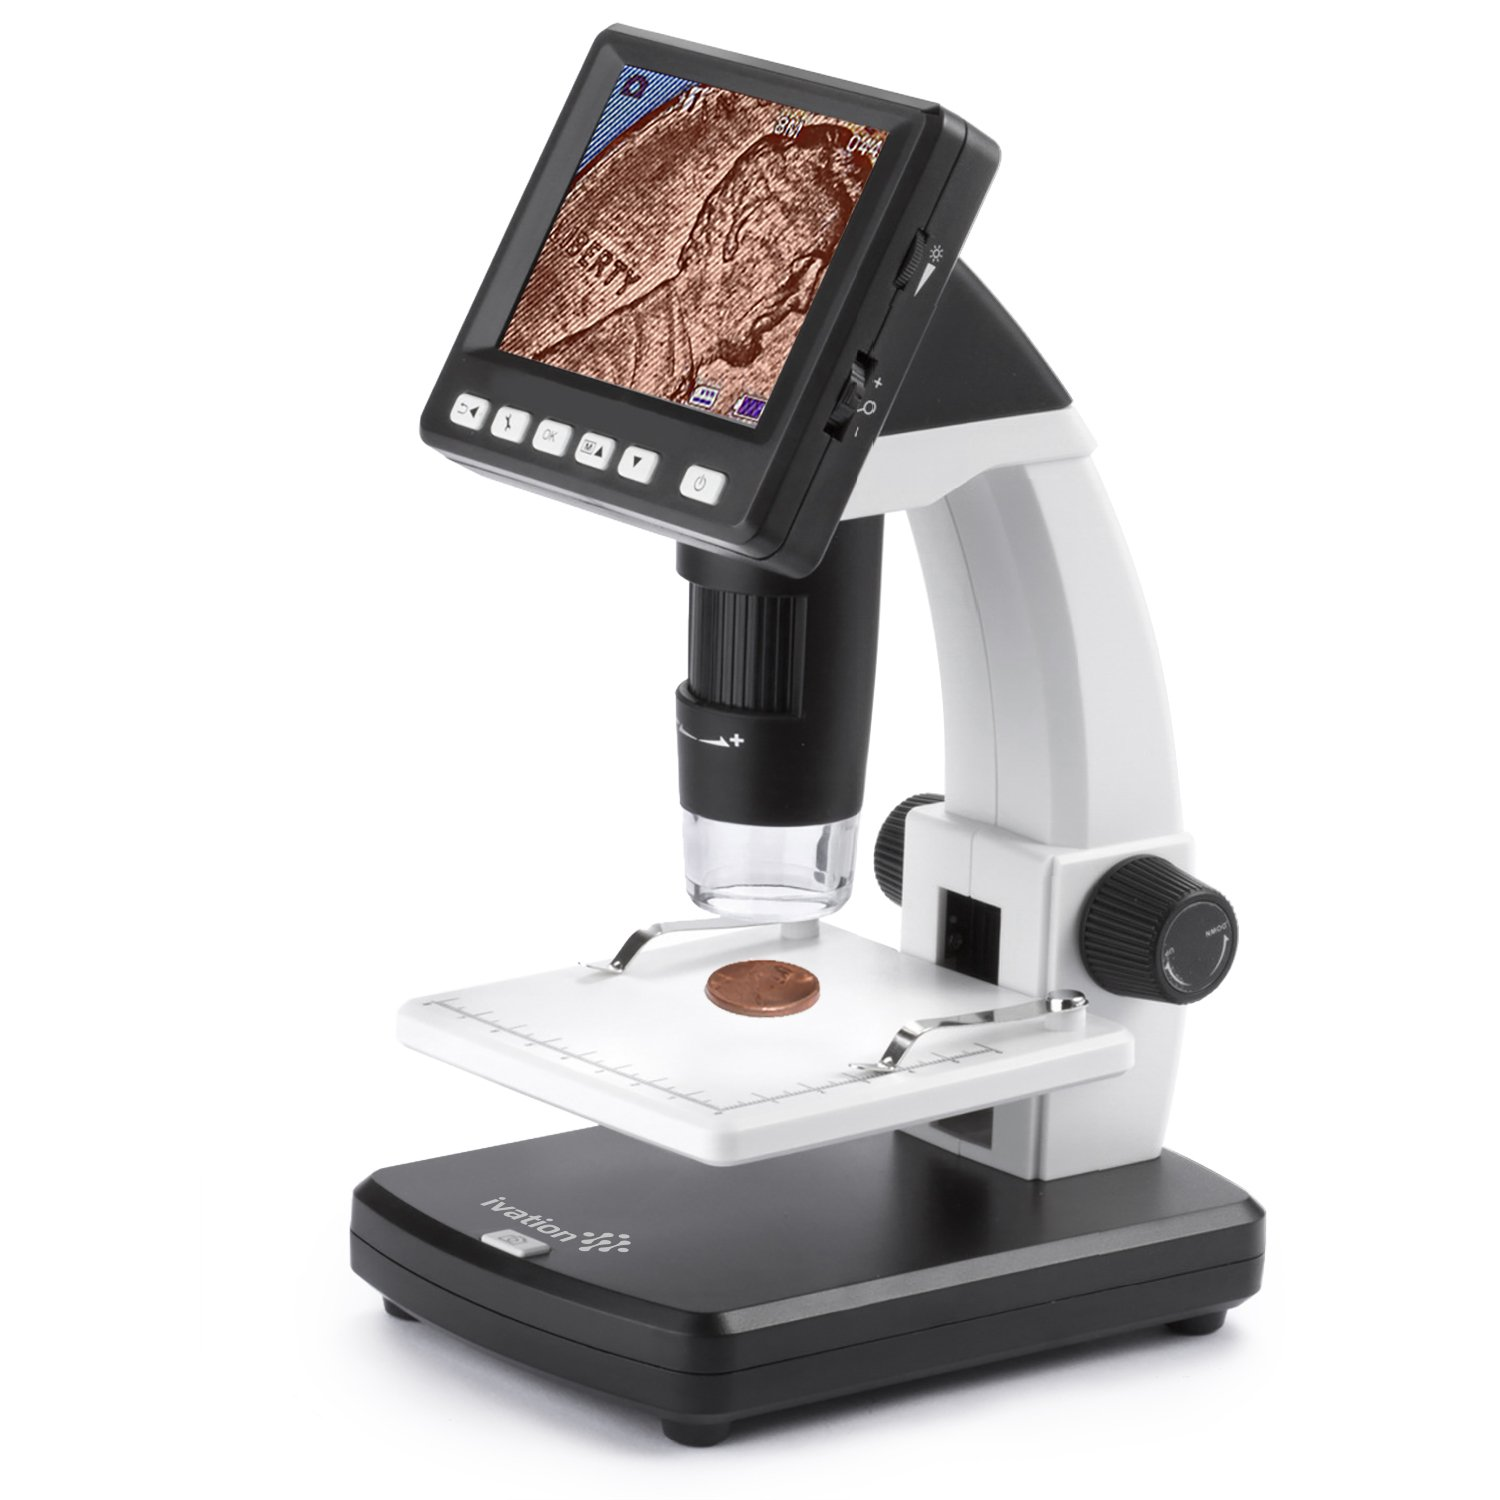 "Ivation Portable Digital HD LCD Microscope – Rechargeable 14MP Microscope w/220x Optical & 500x Digital Magnification, HD Sensor, 3.5"" LCD Screen, Adjustable Stage, Photo/Video Capture, HDMI & More"